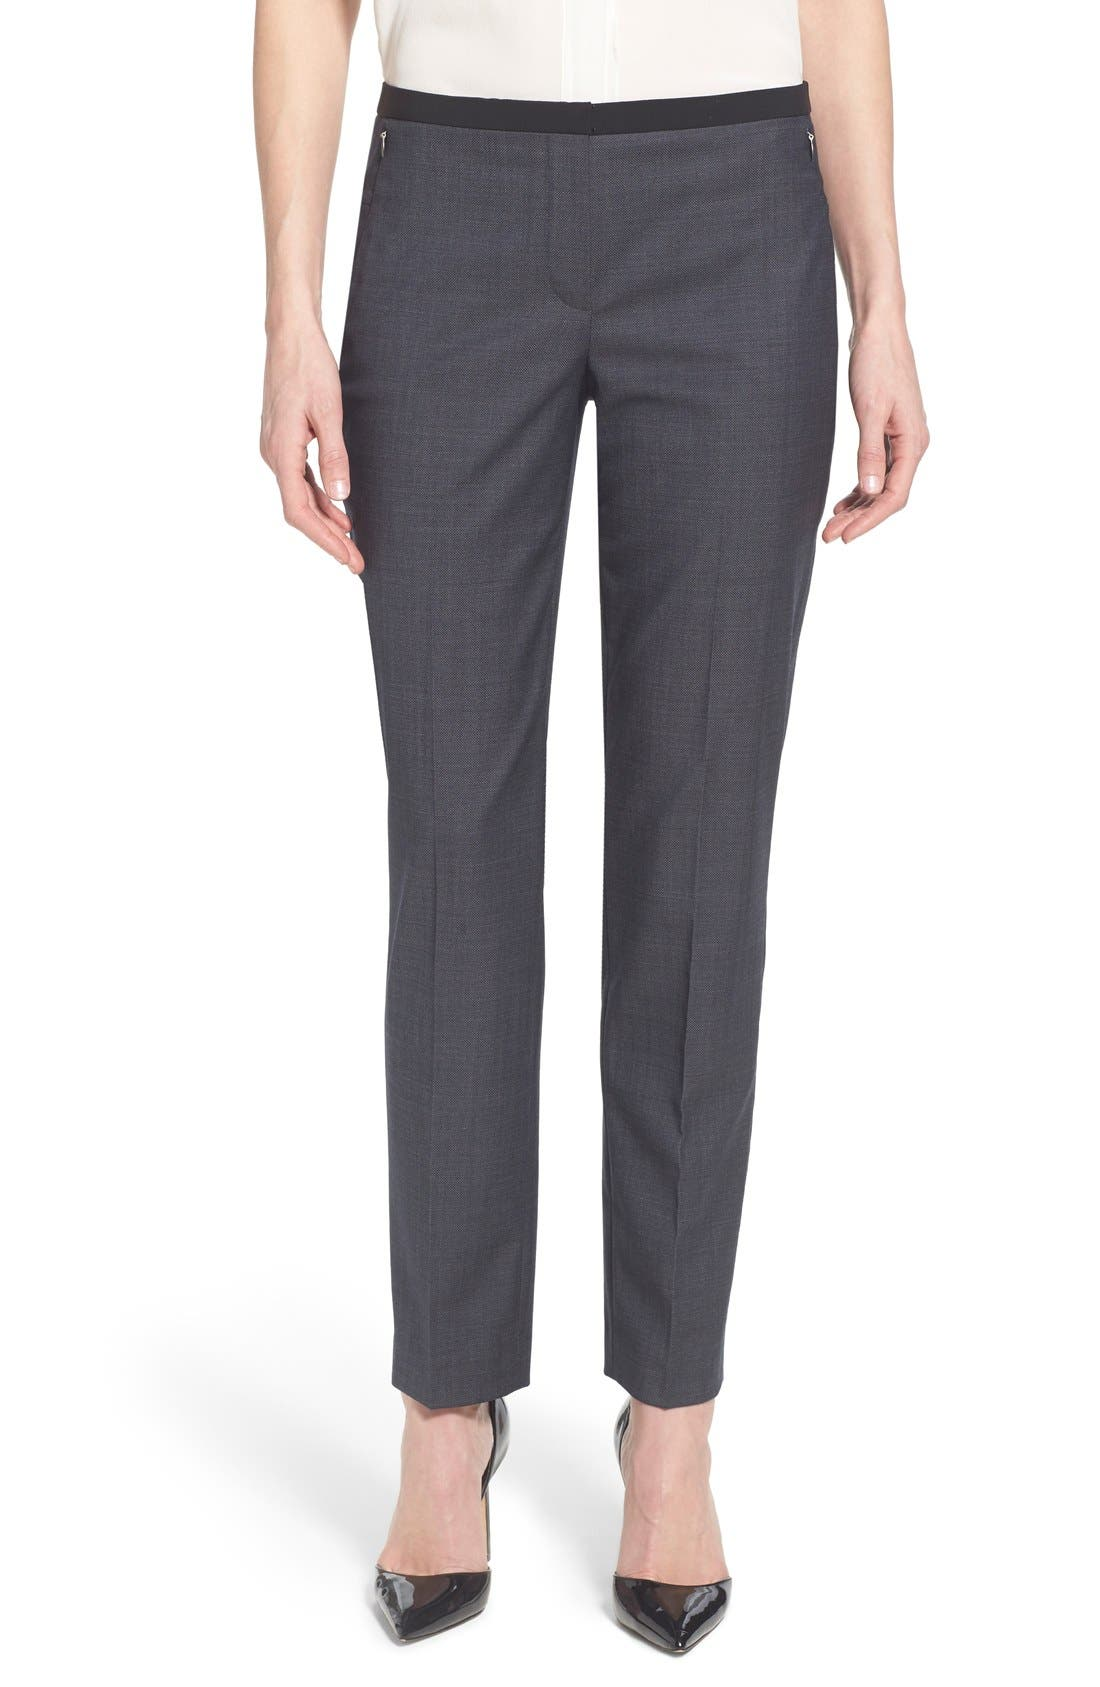 Alternate Image 1 Selected - Elie Tahari 'Jillian' Slim Fit Stretch Woven Pants